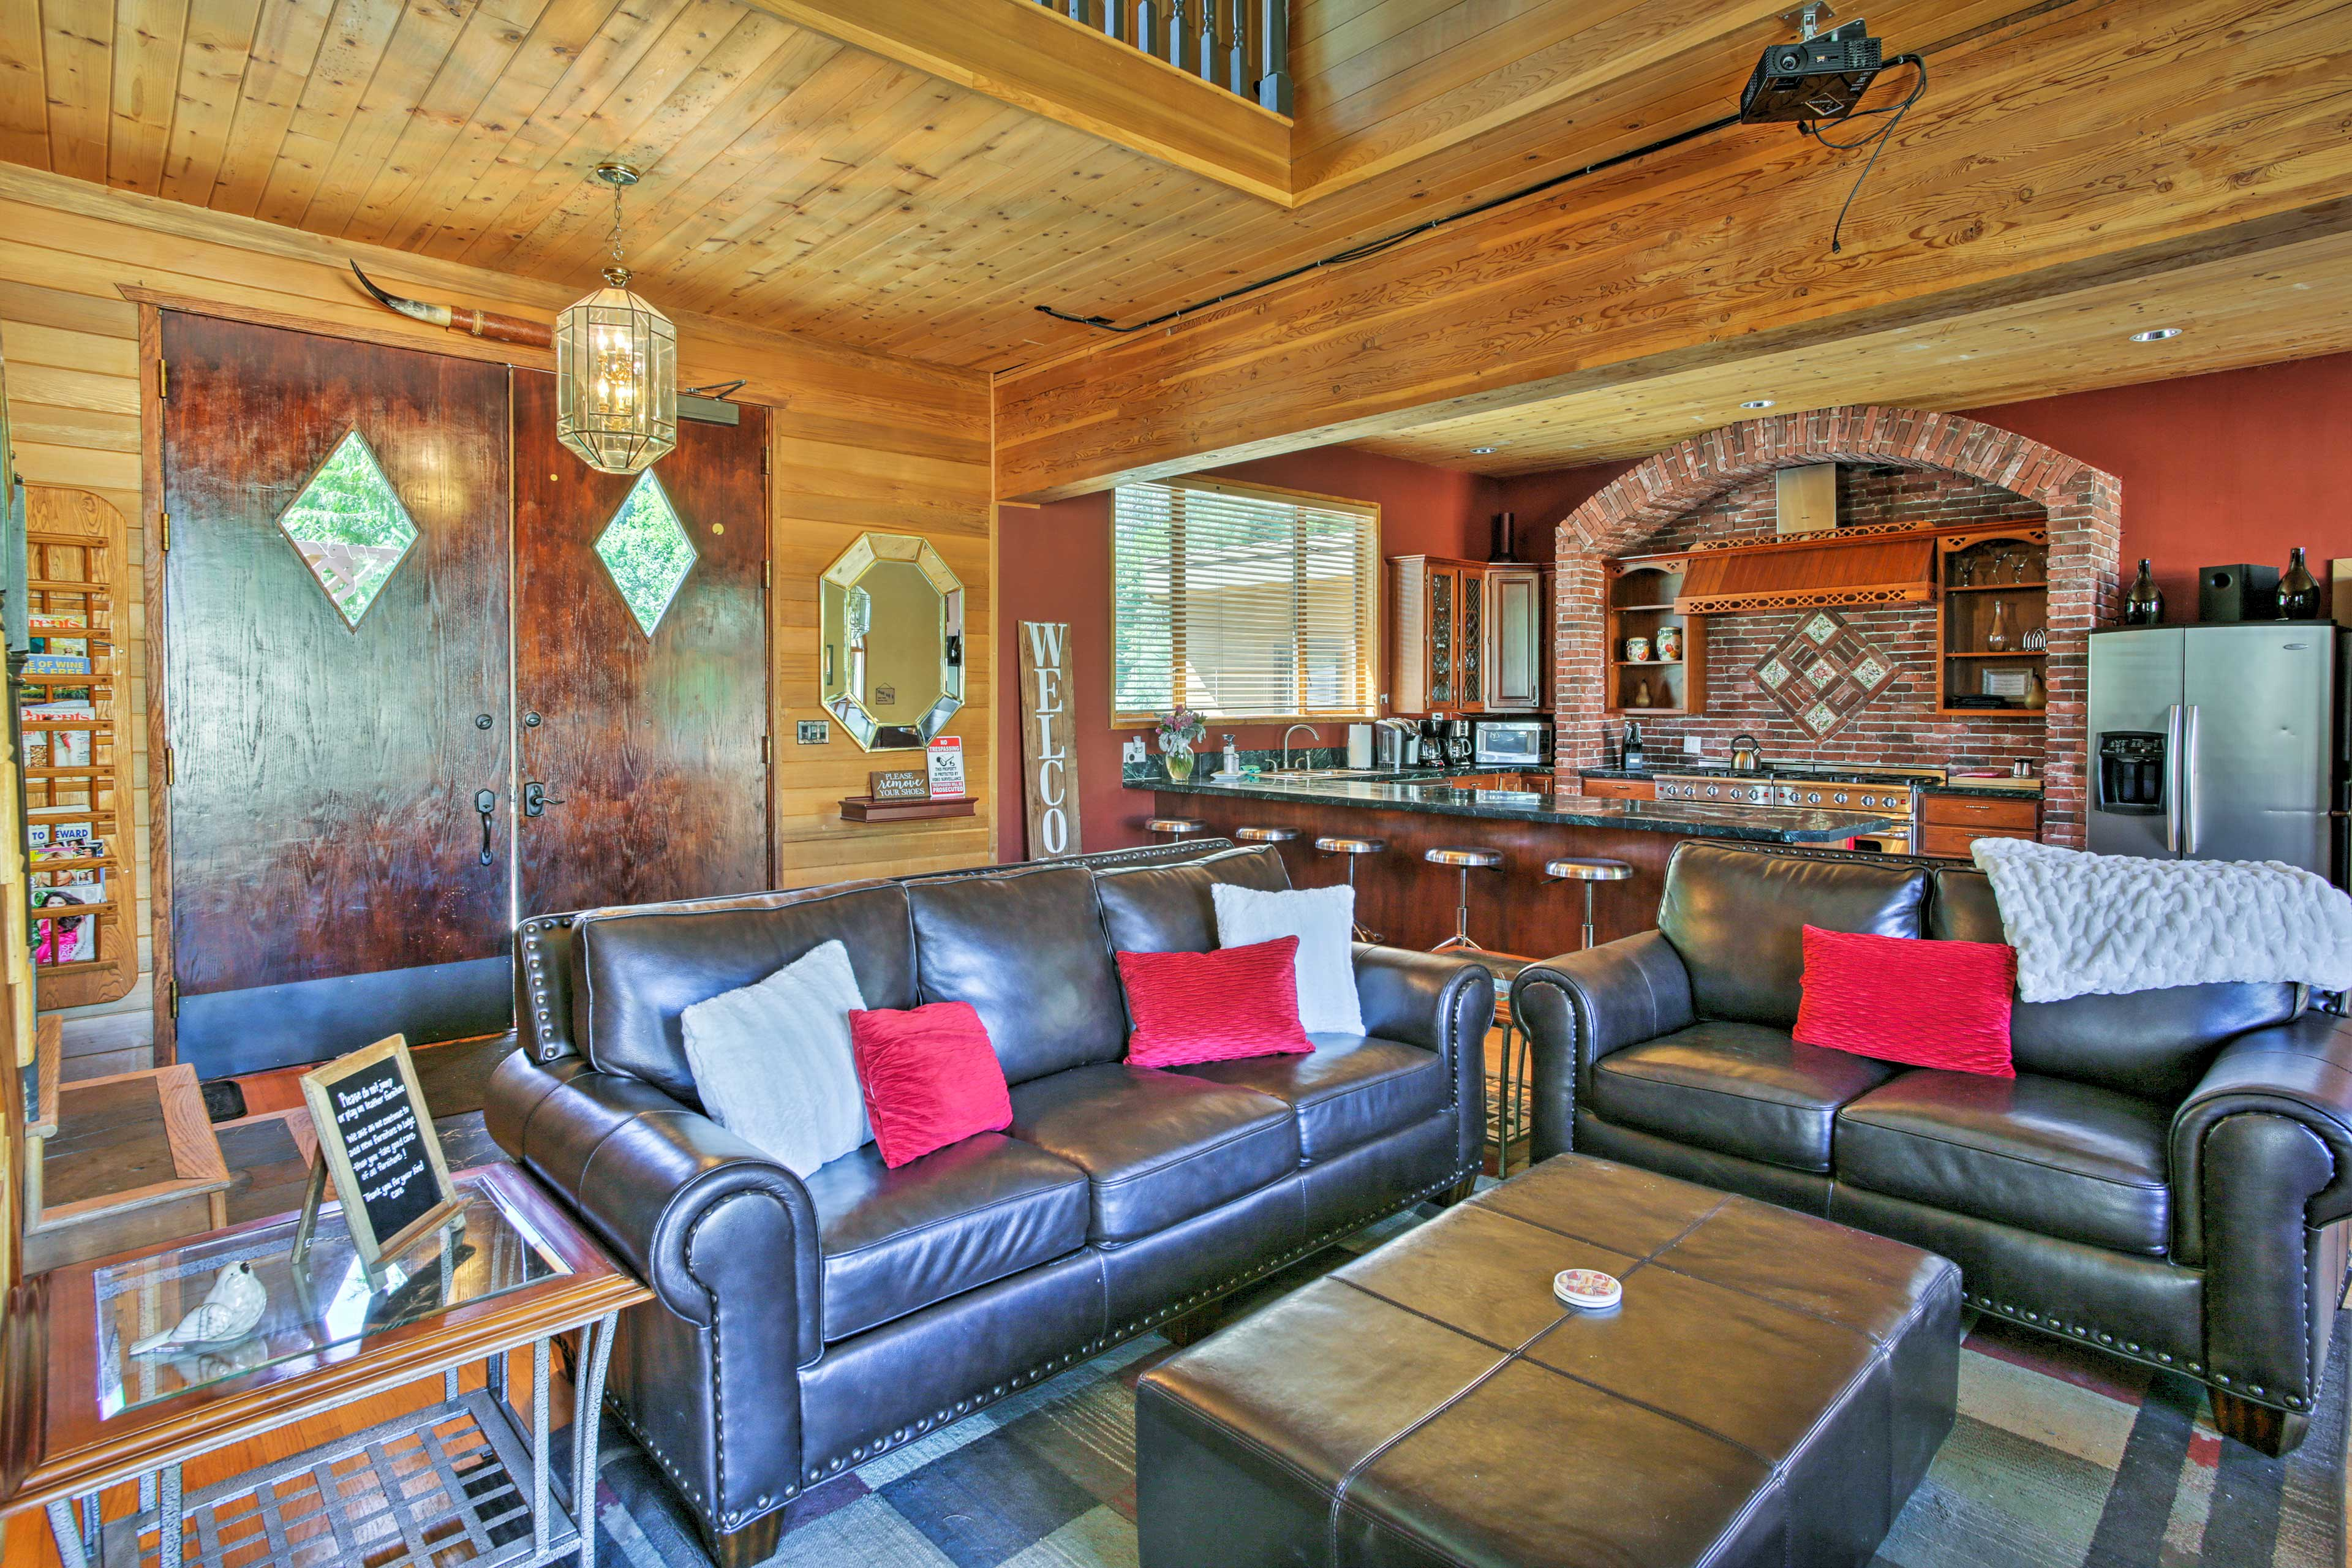 The house features 6,654 square feet of comfort for you to enjoy together.